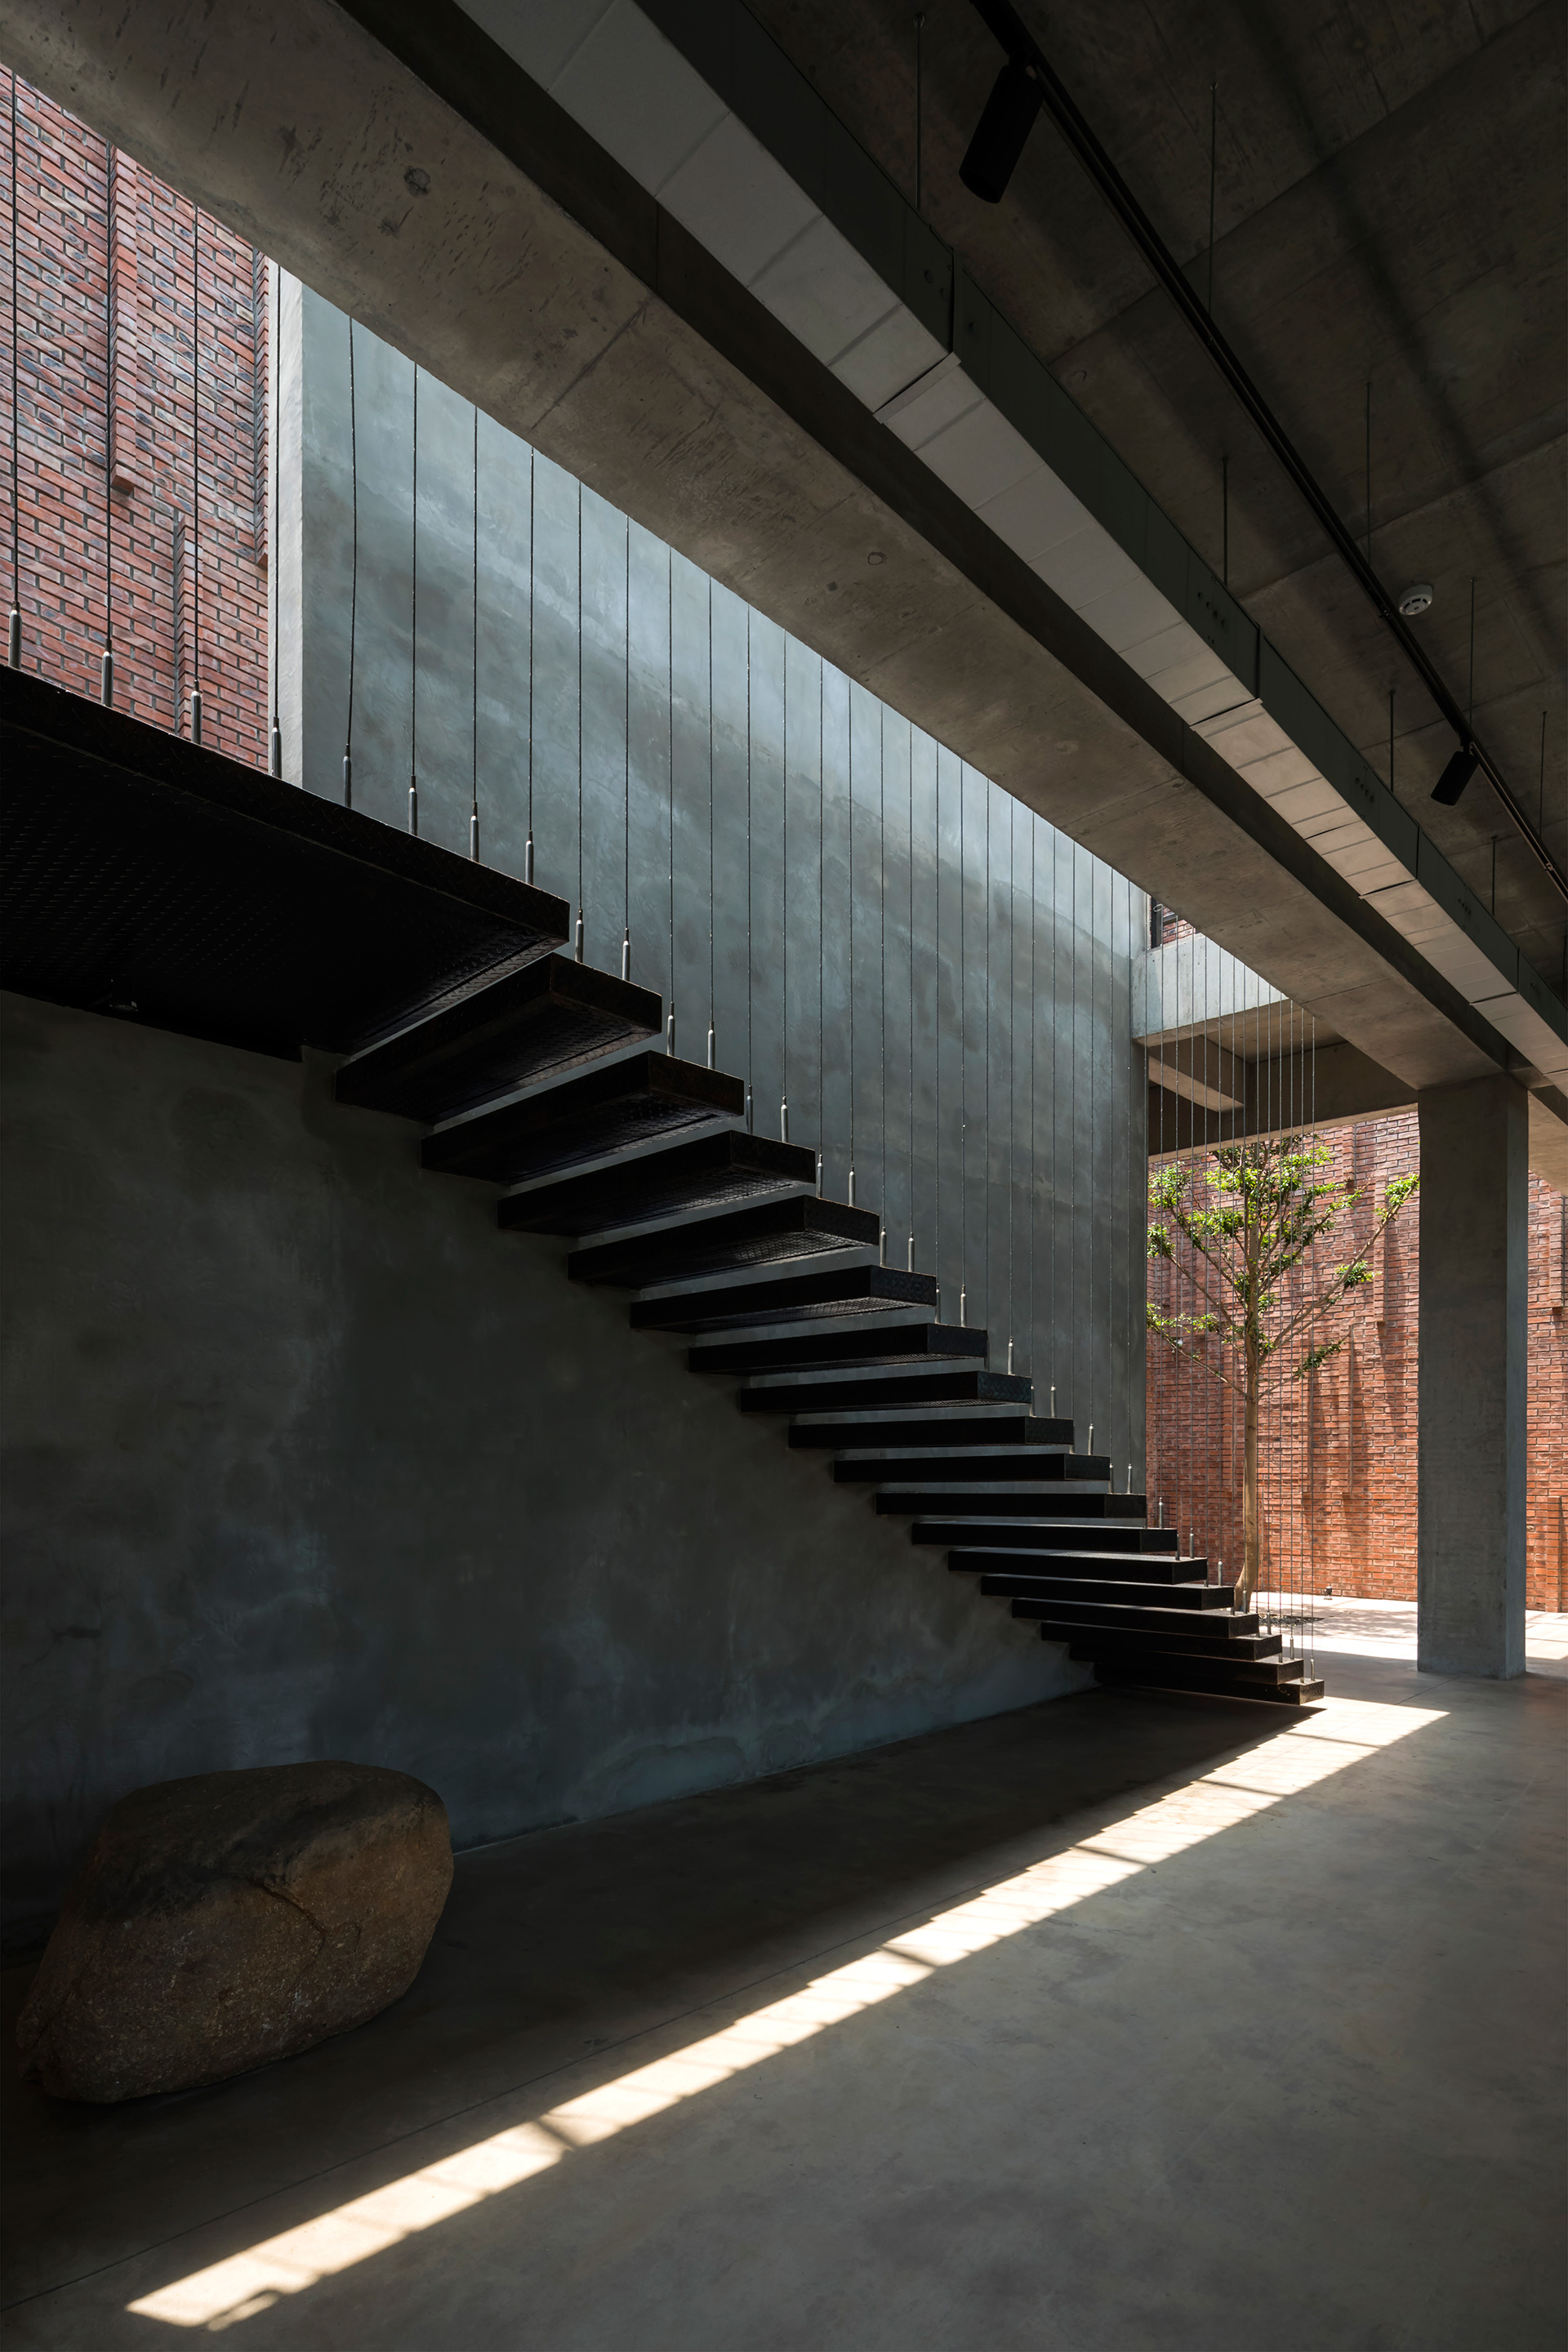 The floating staircase with its stretched metal rope railing | Studio VDGA | Deepak Guggari | STIRworld